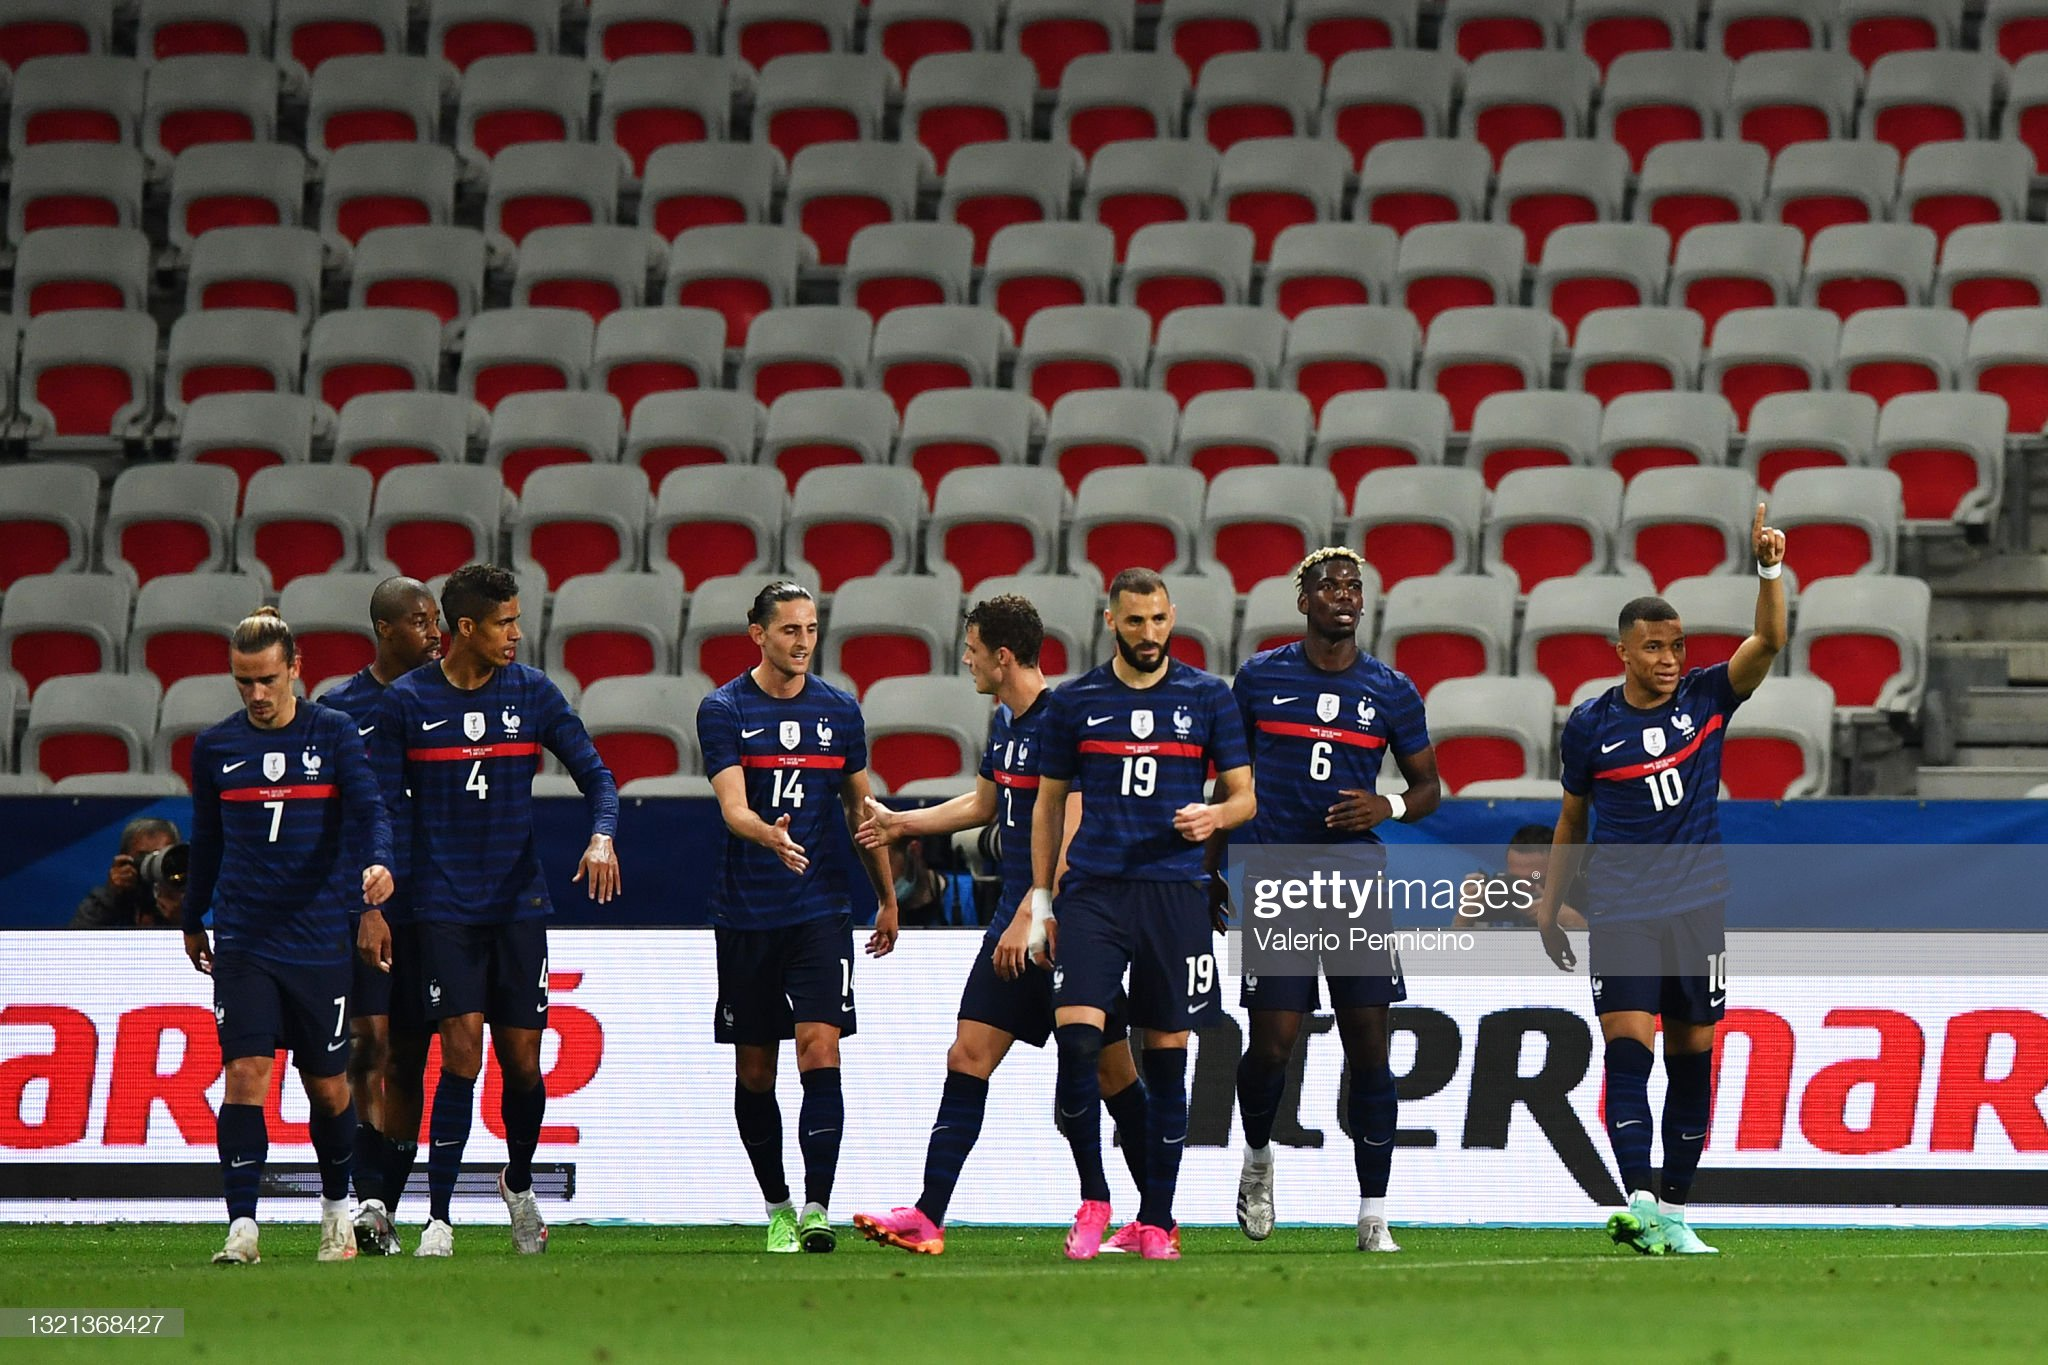 The group stage favourites at Euro 2020